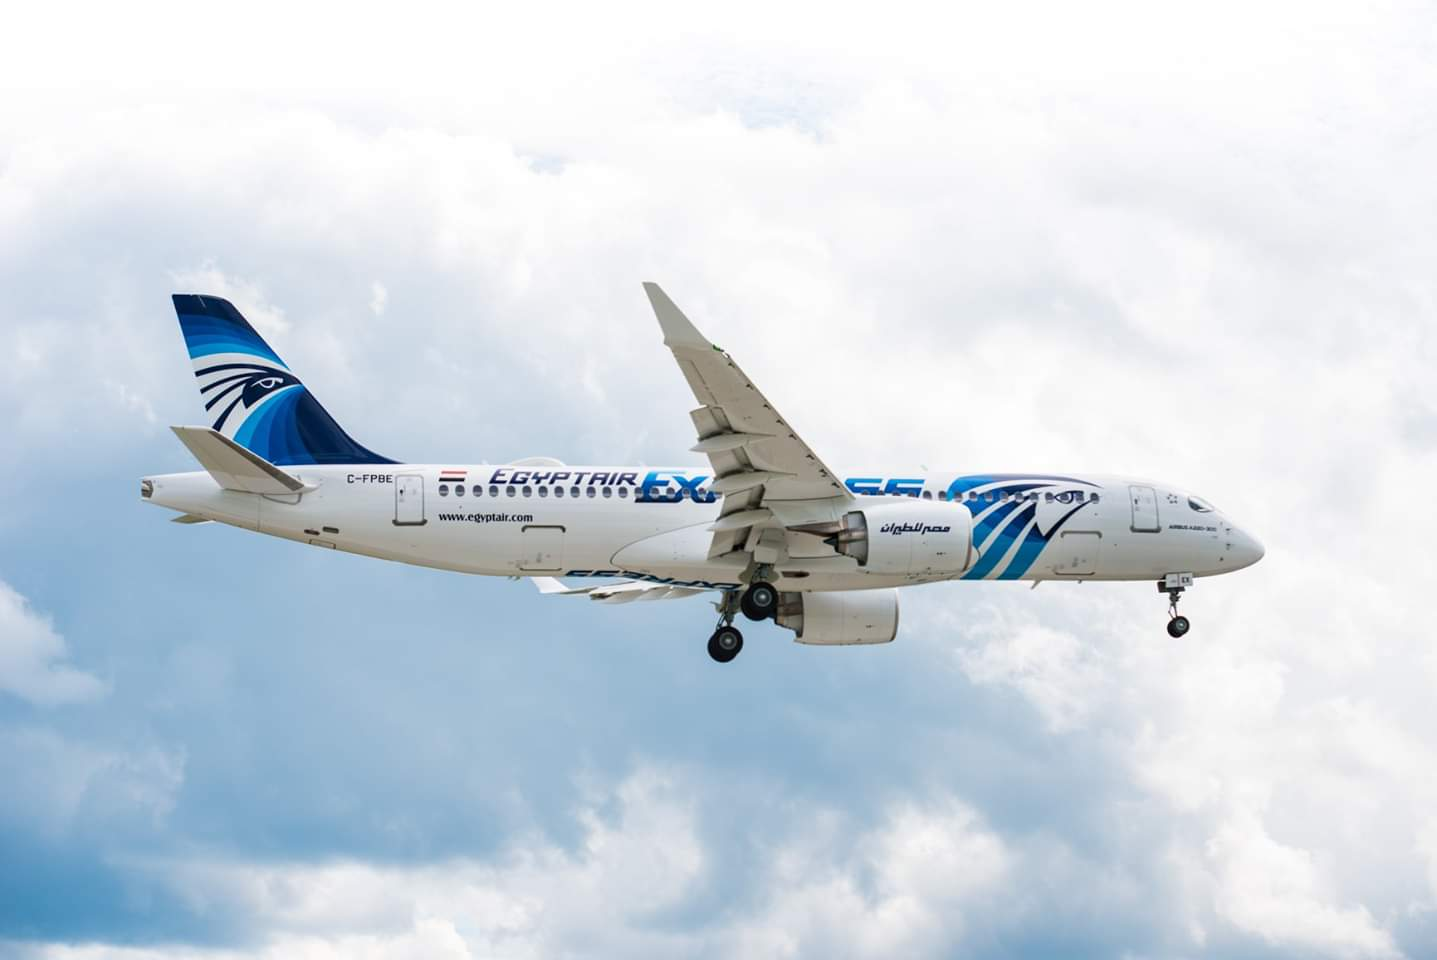 EGYPTAIR ANNOUNCES THE EXPANSION OF COOPERATION WITH OPTIONTOWN FOR OPTIMUM TRAVEL SERVICES